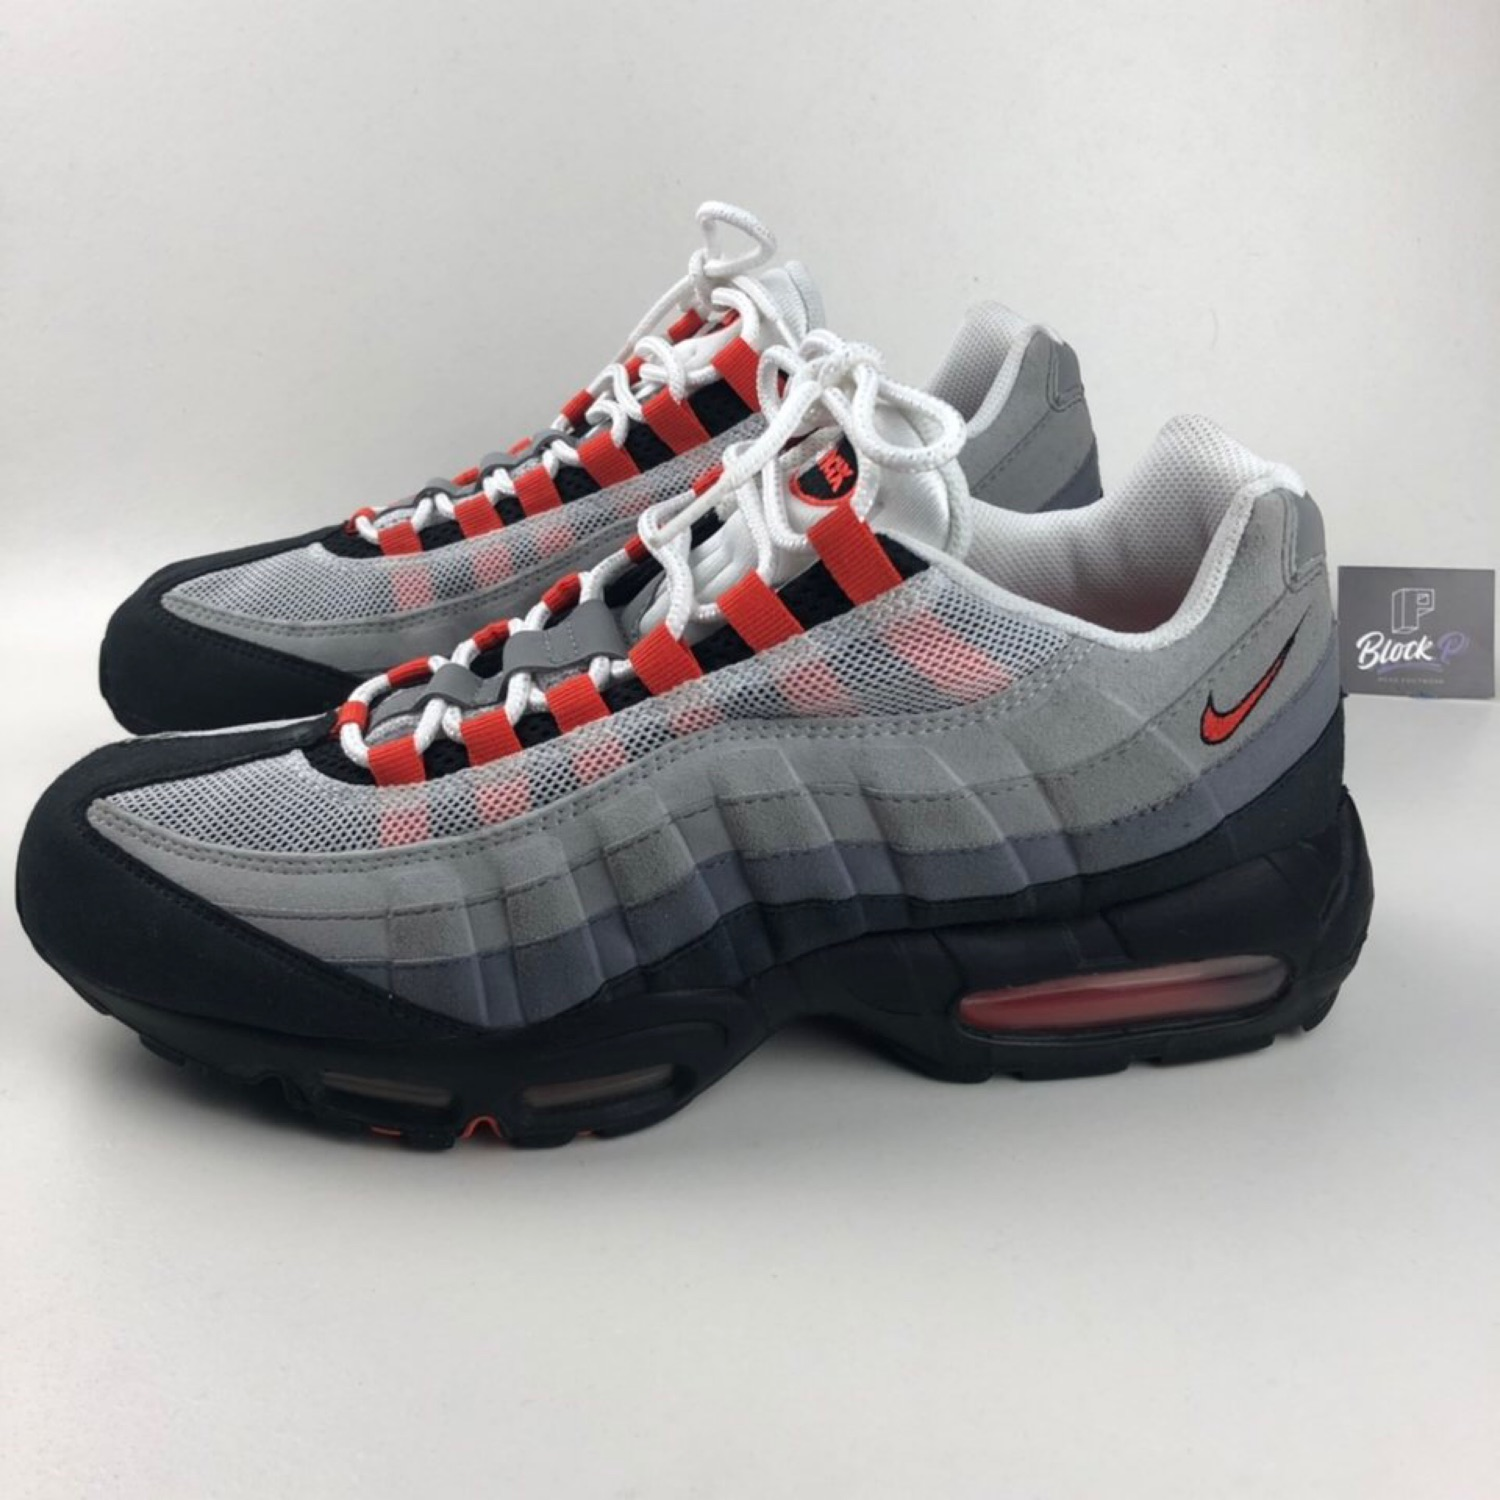 available online retailer cheap for discount Nike Air Max 95 Team Orange